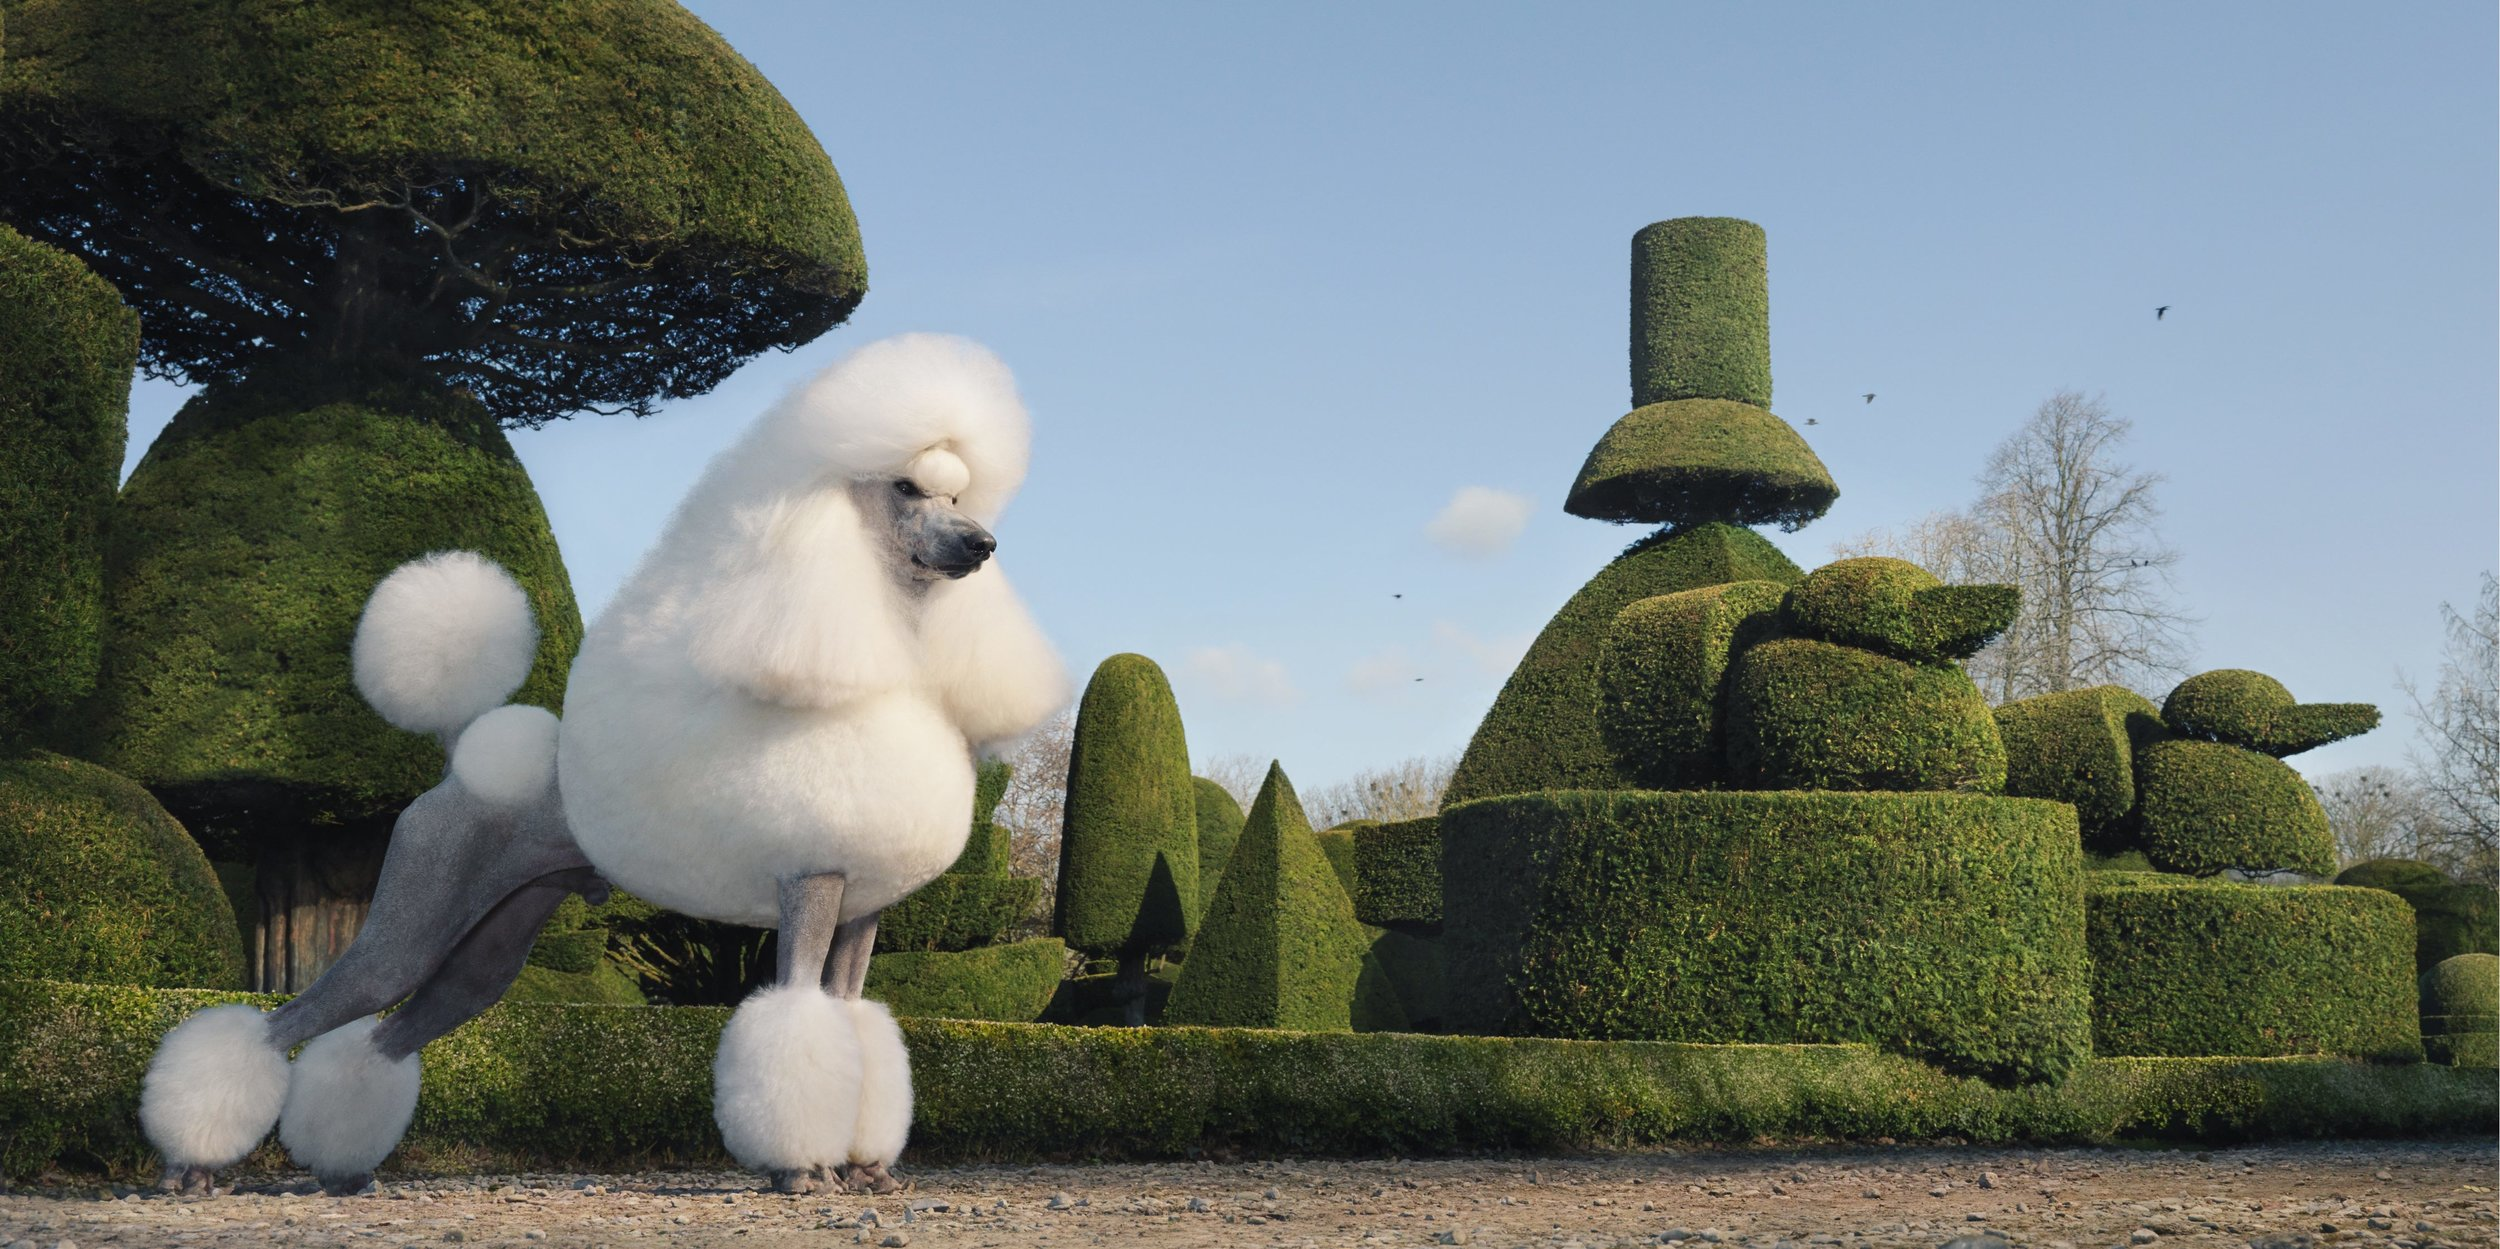 Topiary by Tim Flach